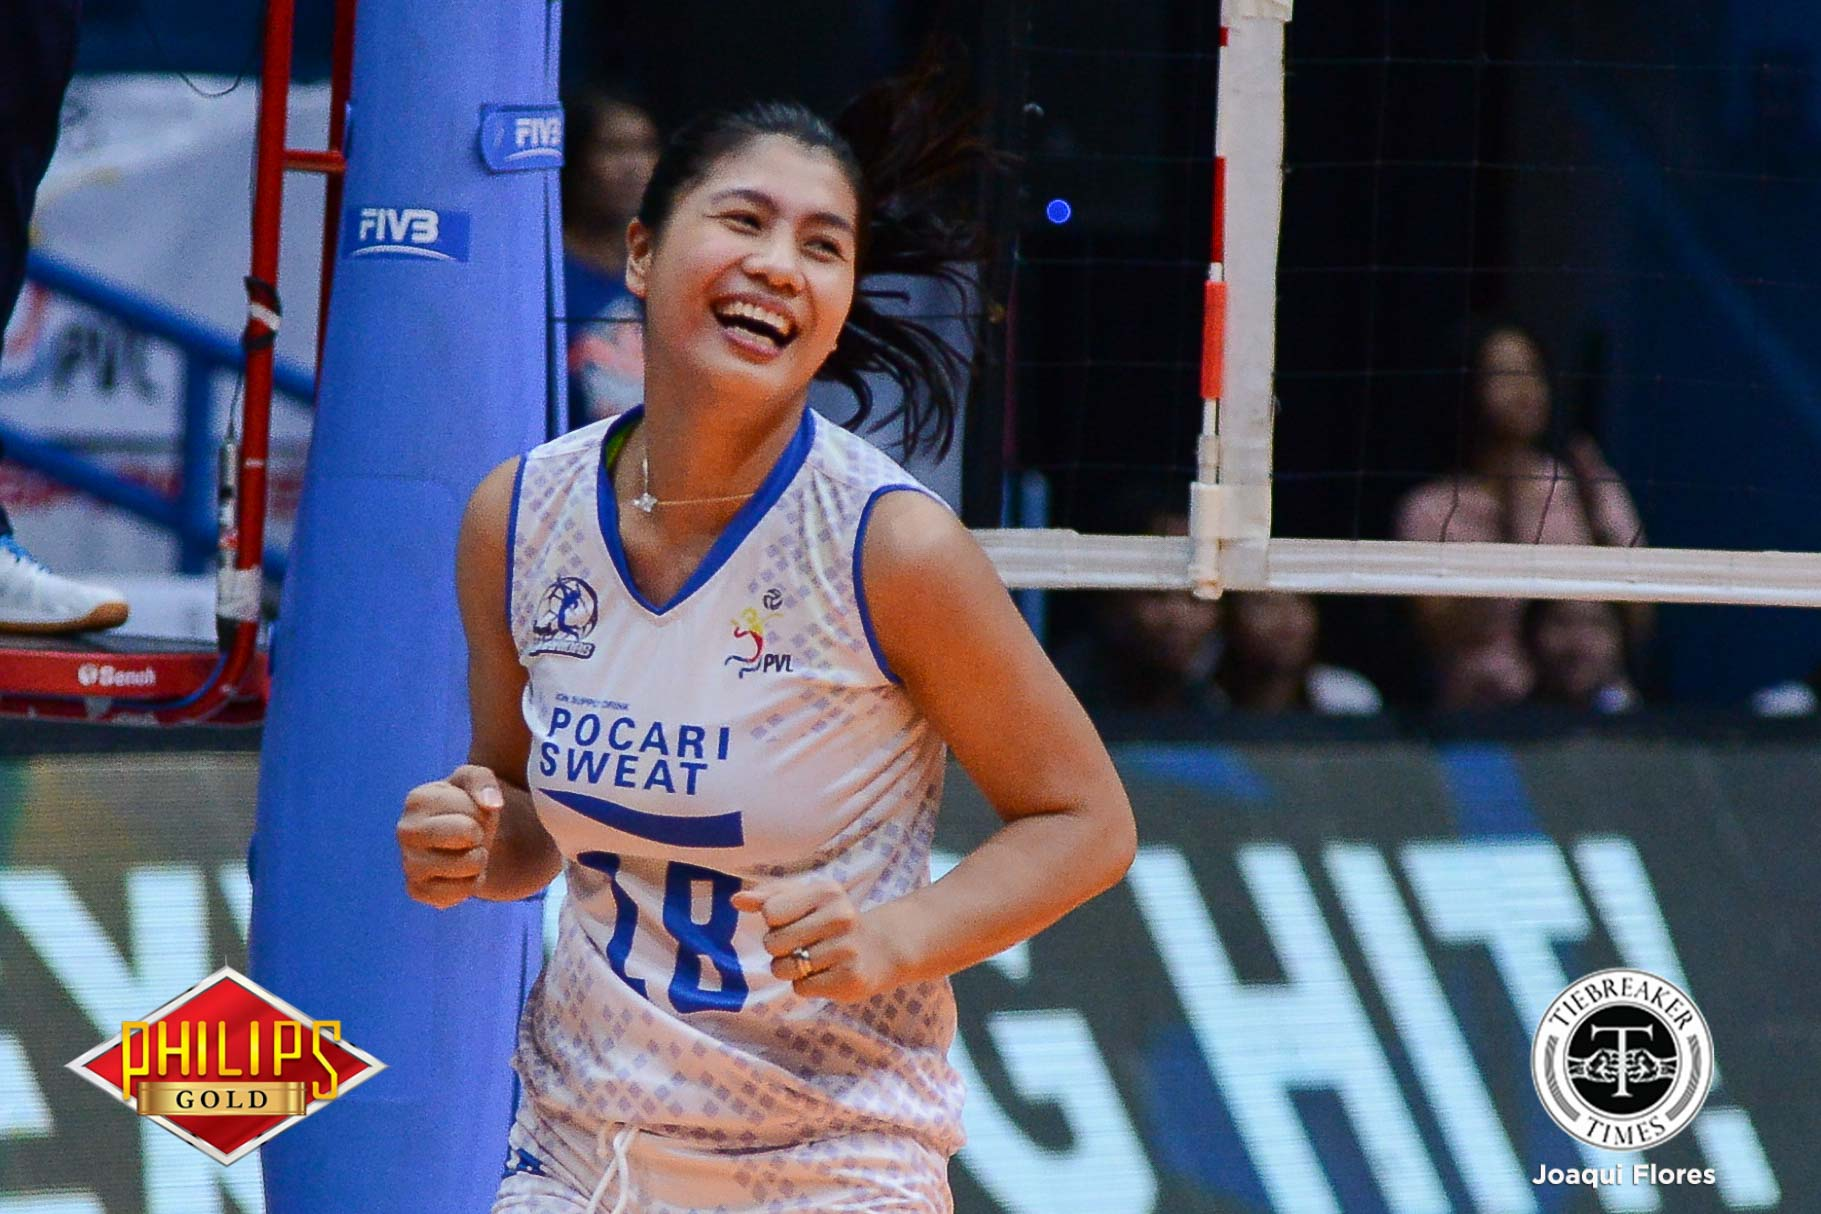 Philippine Sports News - Tiebreaker Times Myla Pablo offers no excuses after first Finals loss News PVL Volleyball  Pocari Sweat Lady Warriors Myla Pablo 2017 PVL Women's Open Conference 2017 PVL Season